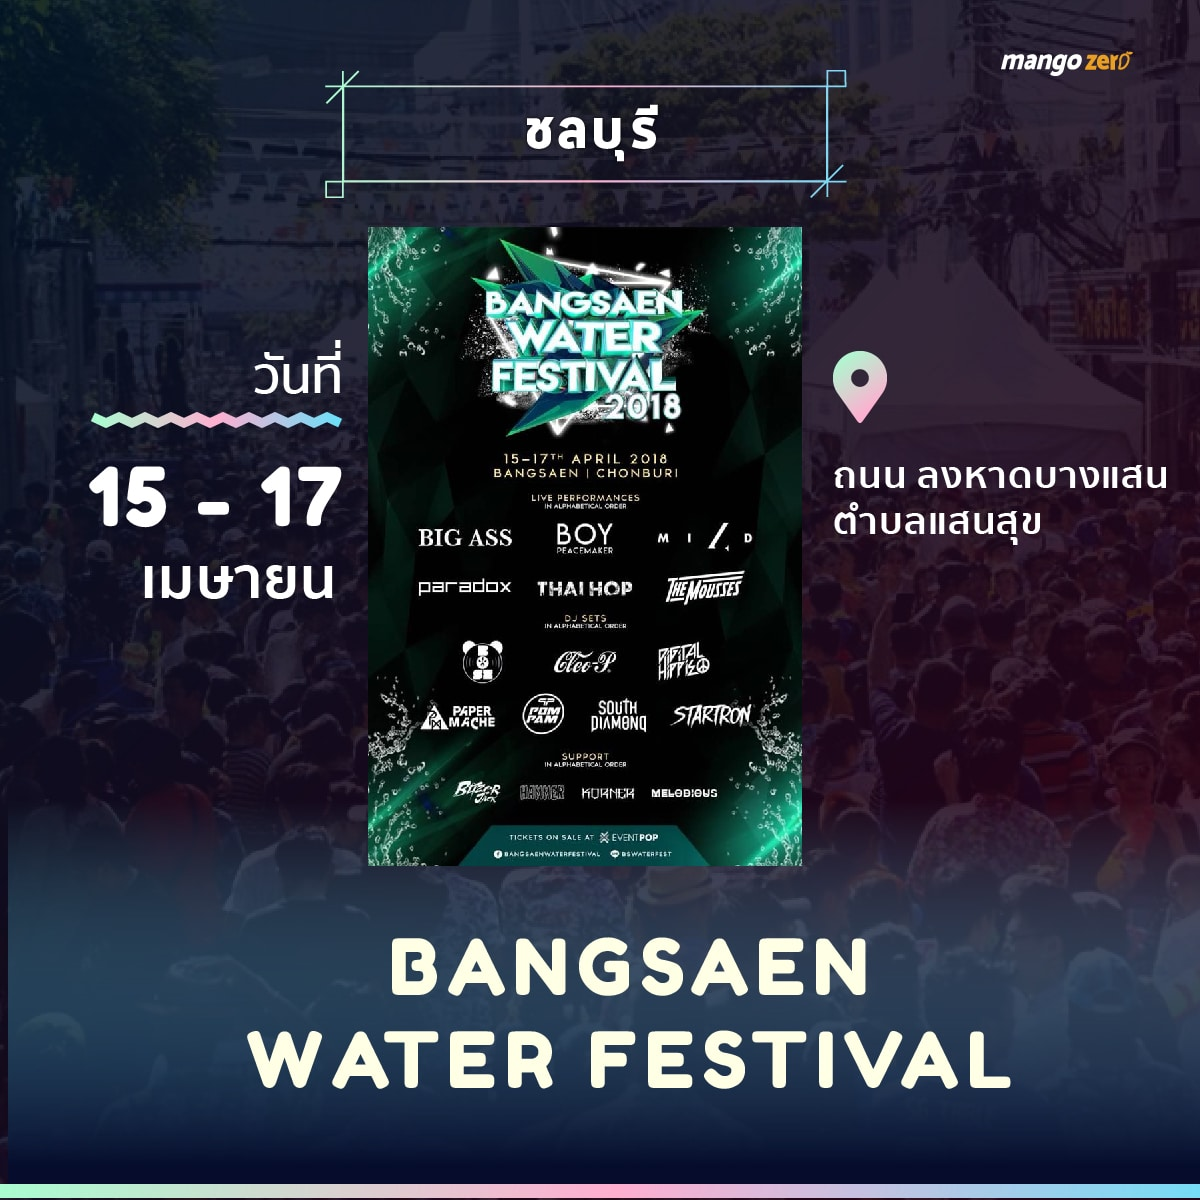 songkran-2018-events-thailand-07